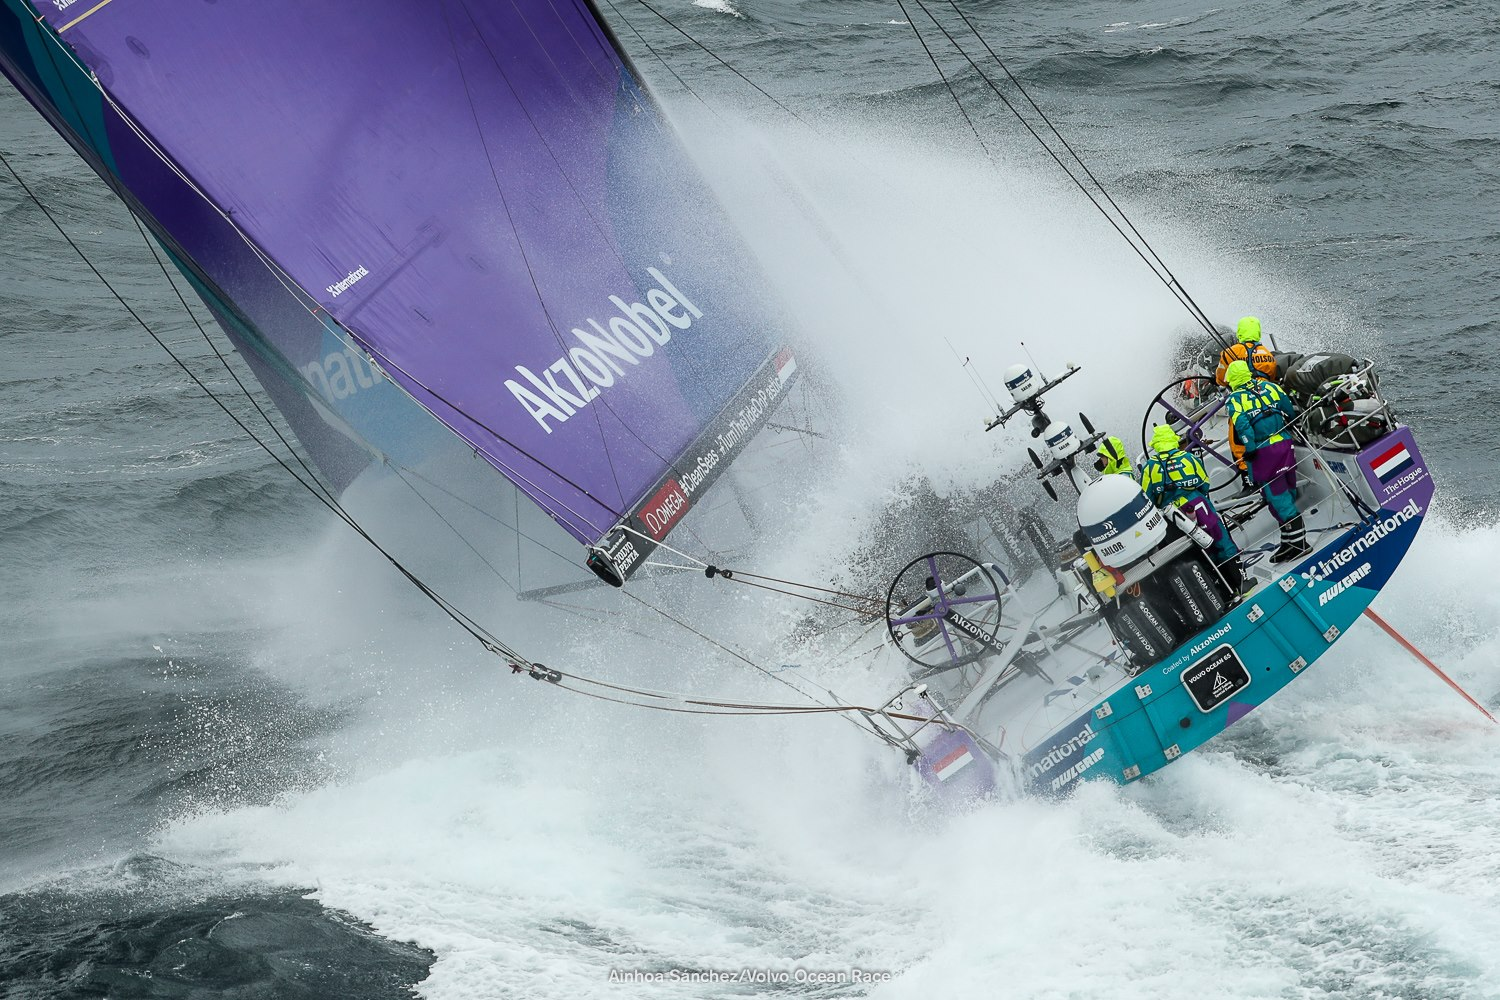 Ocean Race 2021 - Santa Catarina Stop Over